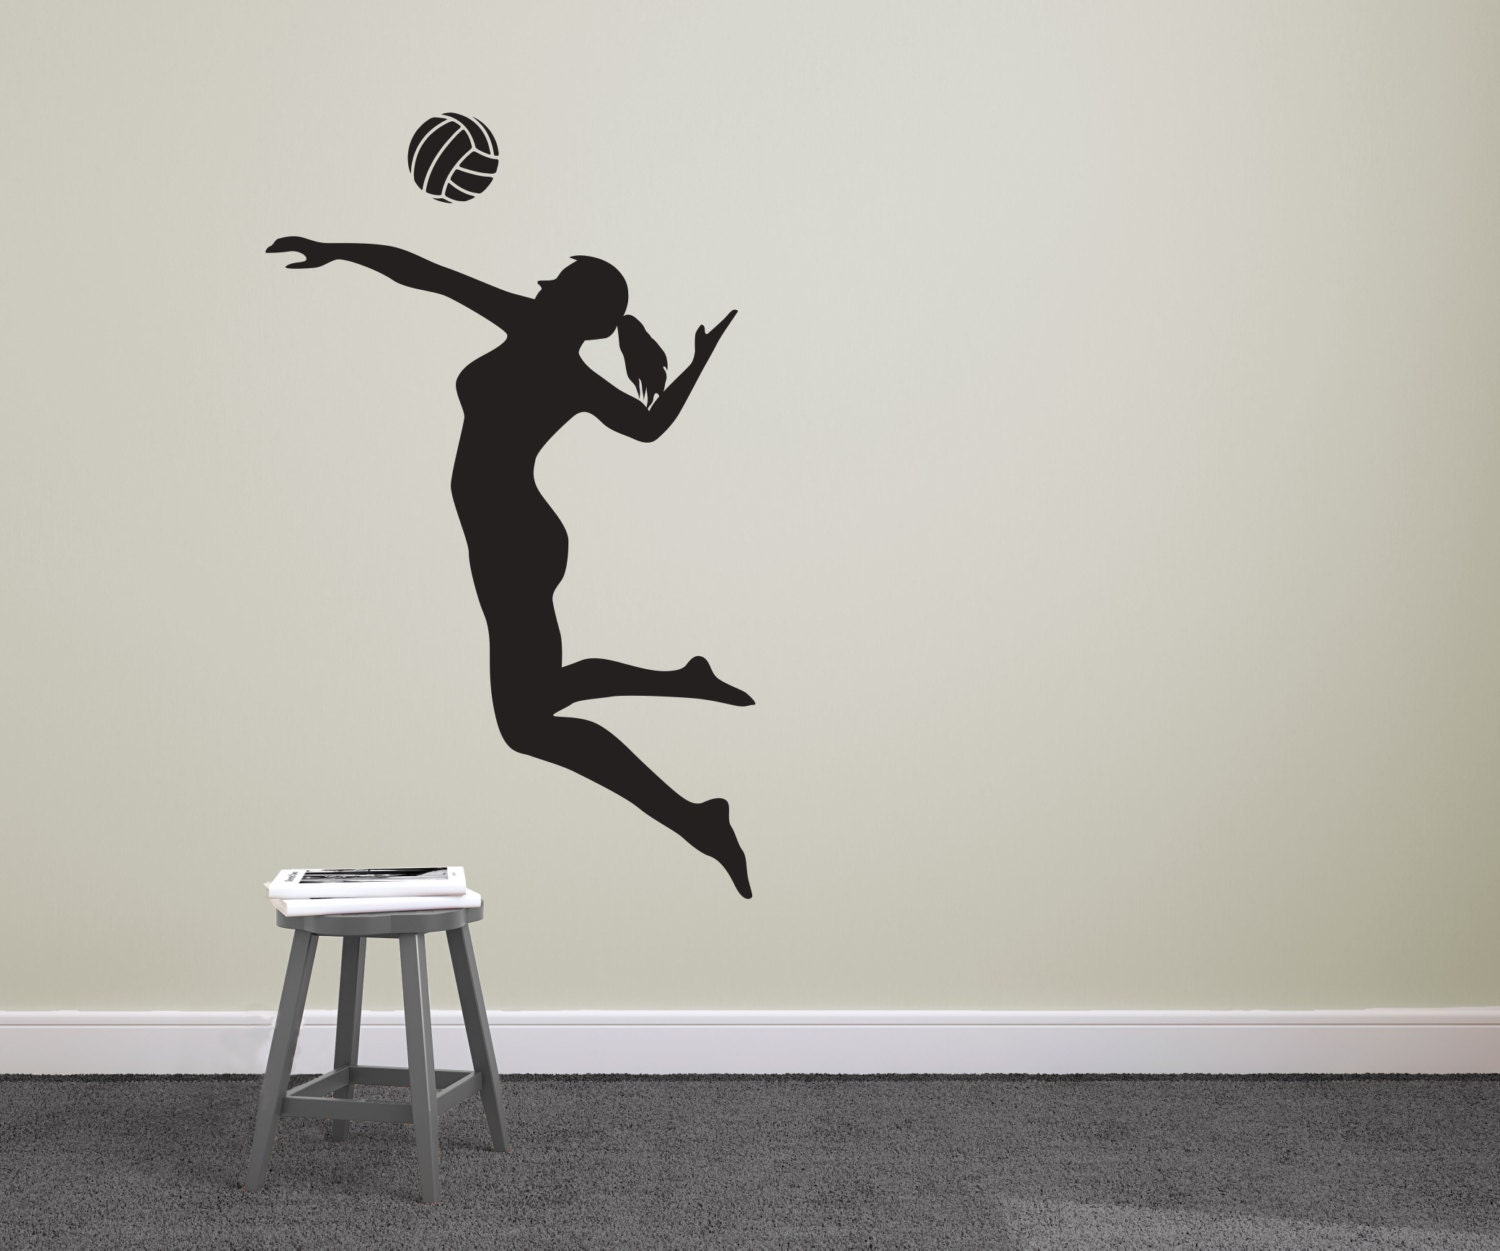 Volleyball Player Spiking Silhouette Sports Wall Decal - Custom vinyl decals barrie